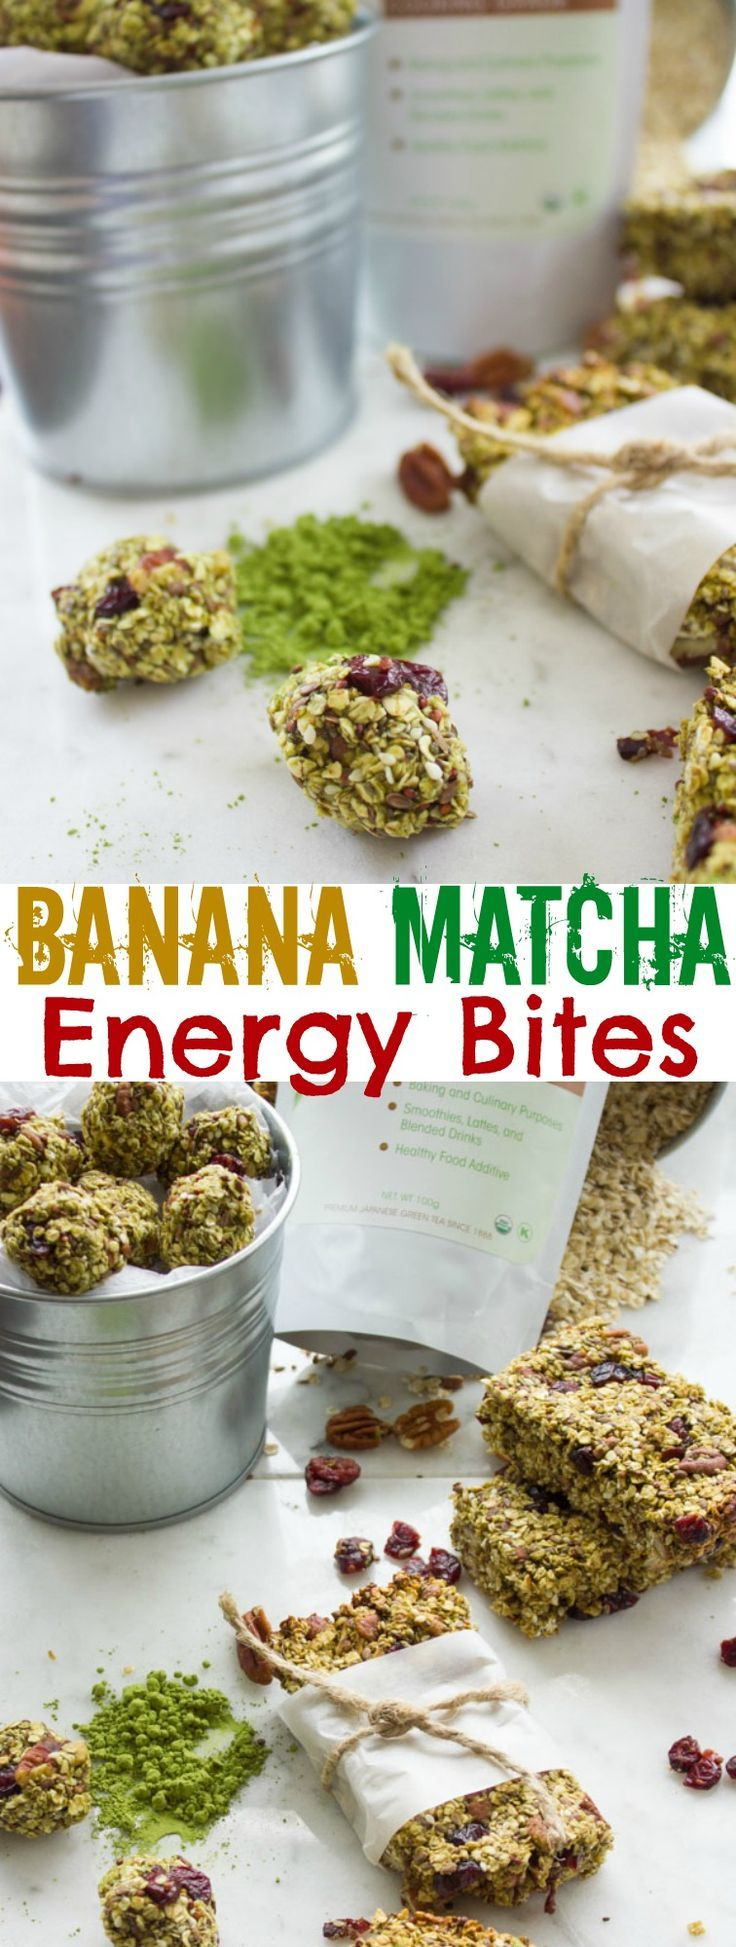 Banana Matcha Energy Bites. These are the BEST homemade protein and anti-oxidant packed energy bites ever--which you can make into energy bars or energy balls. No sugar added, perfectly vegan and gluten free. A favorite snack everyone will LOVE! www.twopurplefigs...